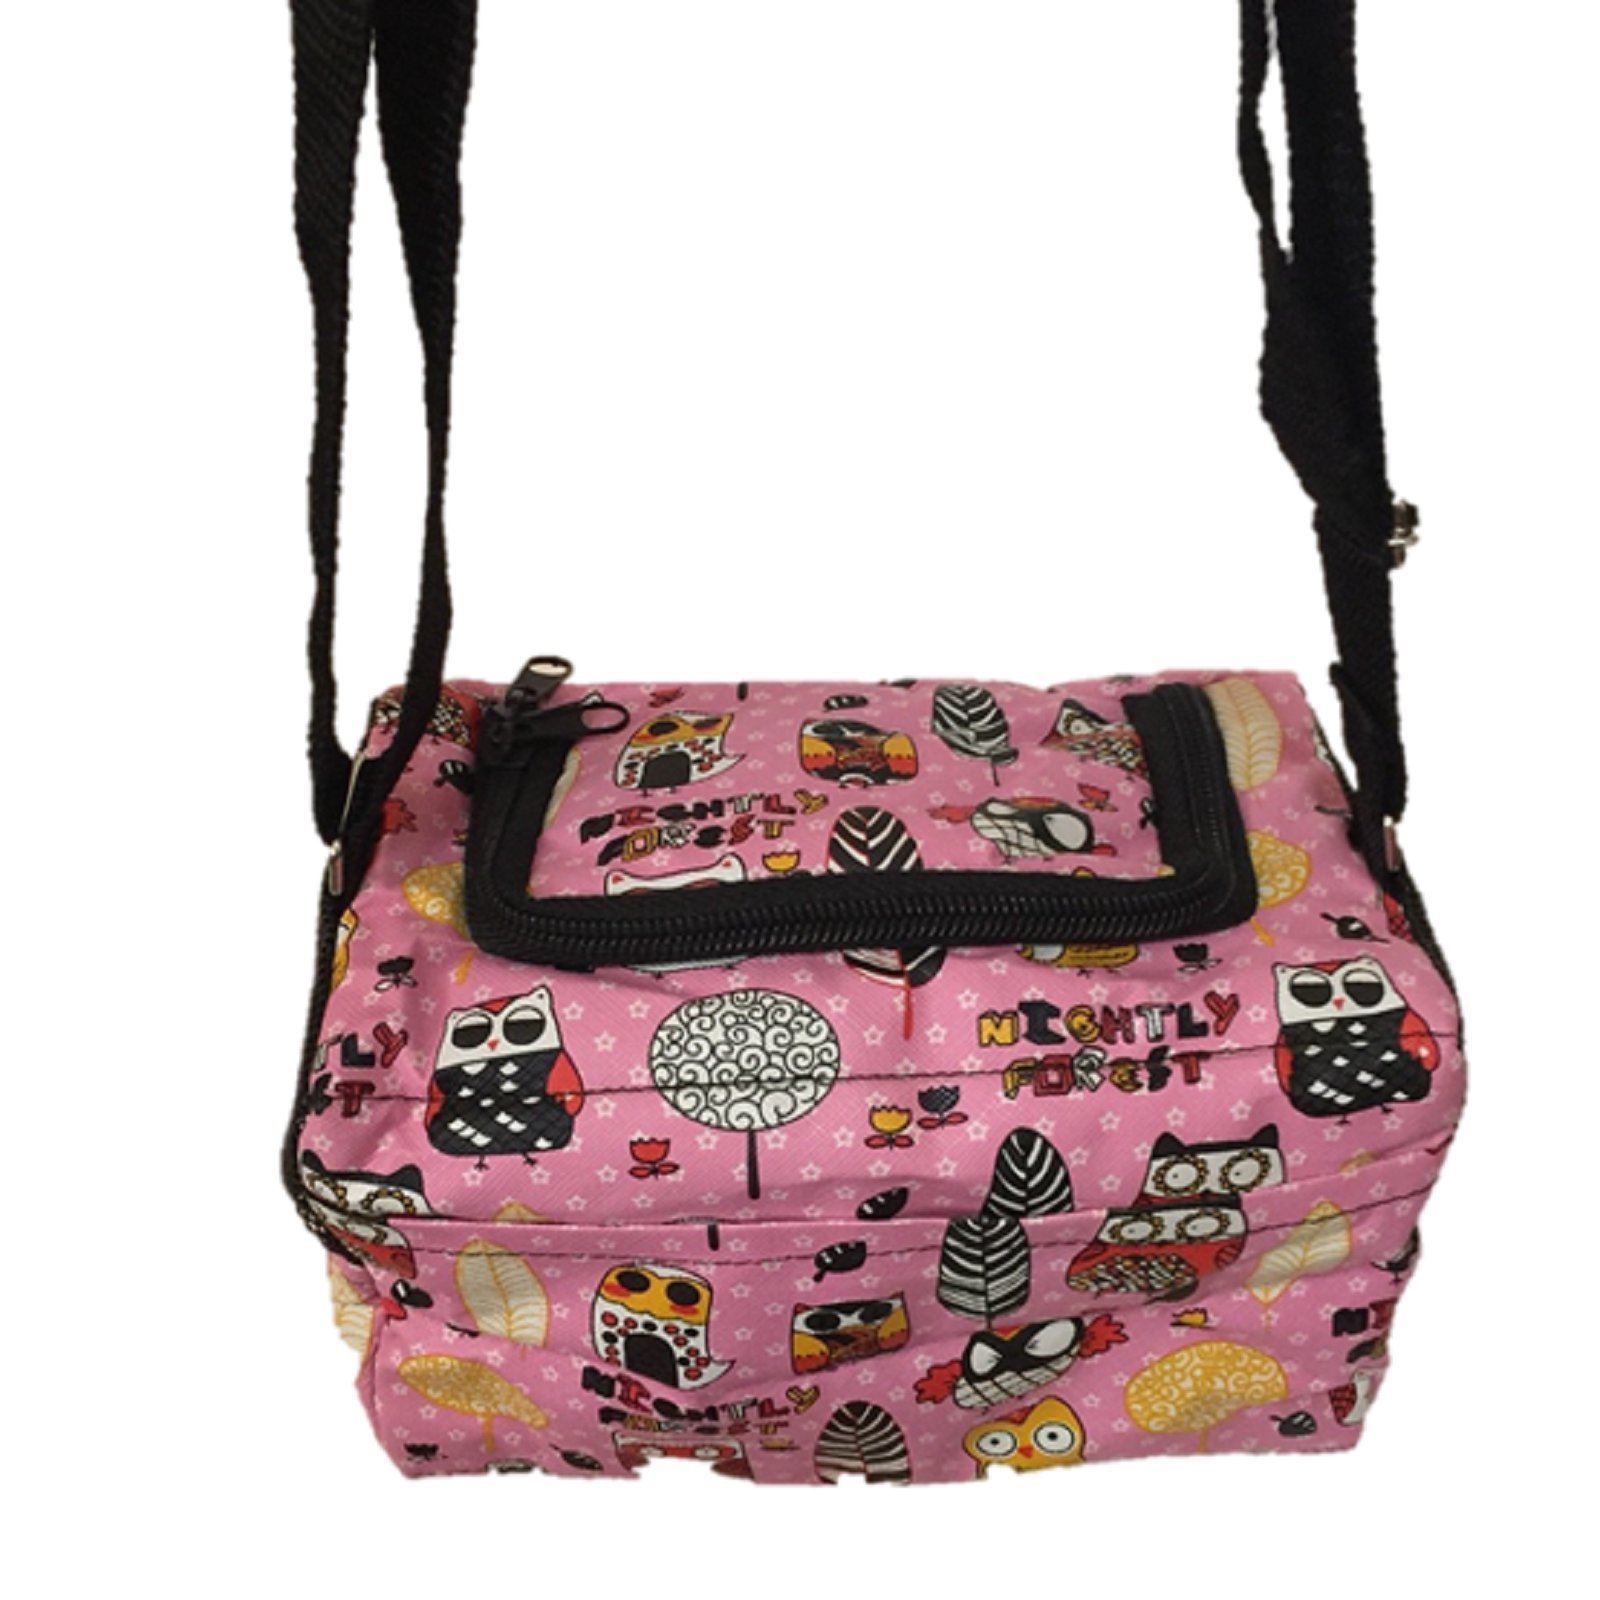 HOT! Cute Travel/Portable Animal Printed Style Sugar Glider Marmoset Bird Hamster Squirrel Chinchillas Small Pet Travel Cage Shoulder Bag Comfort Carrier By Polar Bear's Republic (Pink) by Polar Bear's Pet Shop